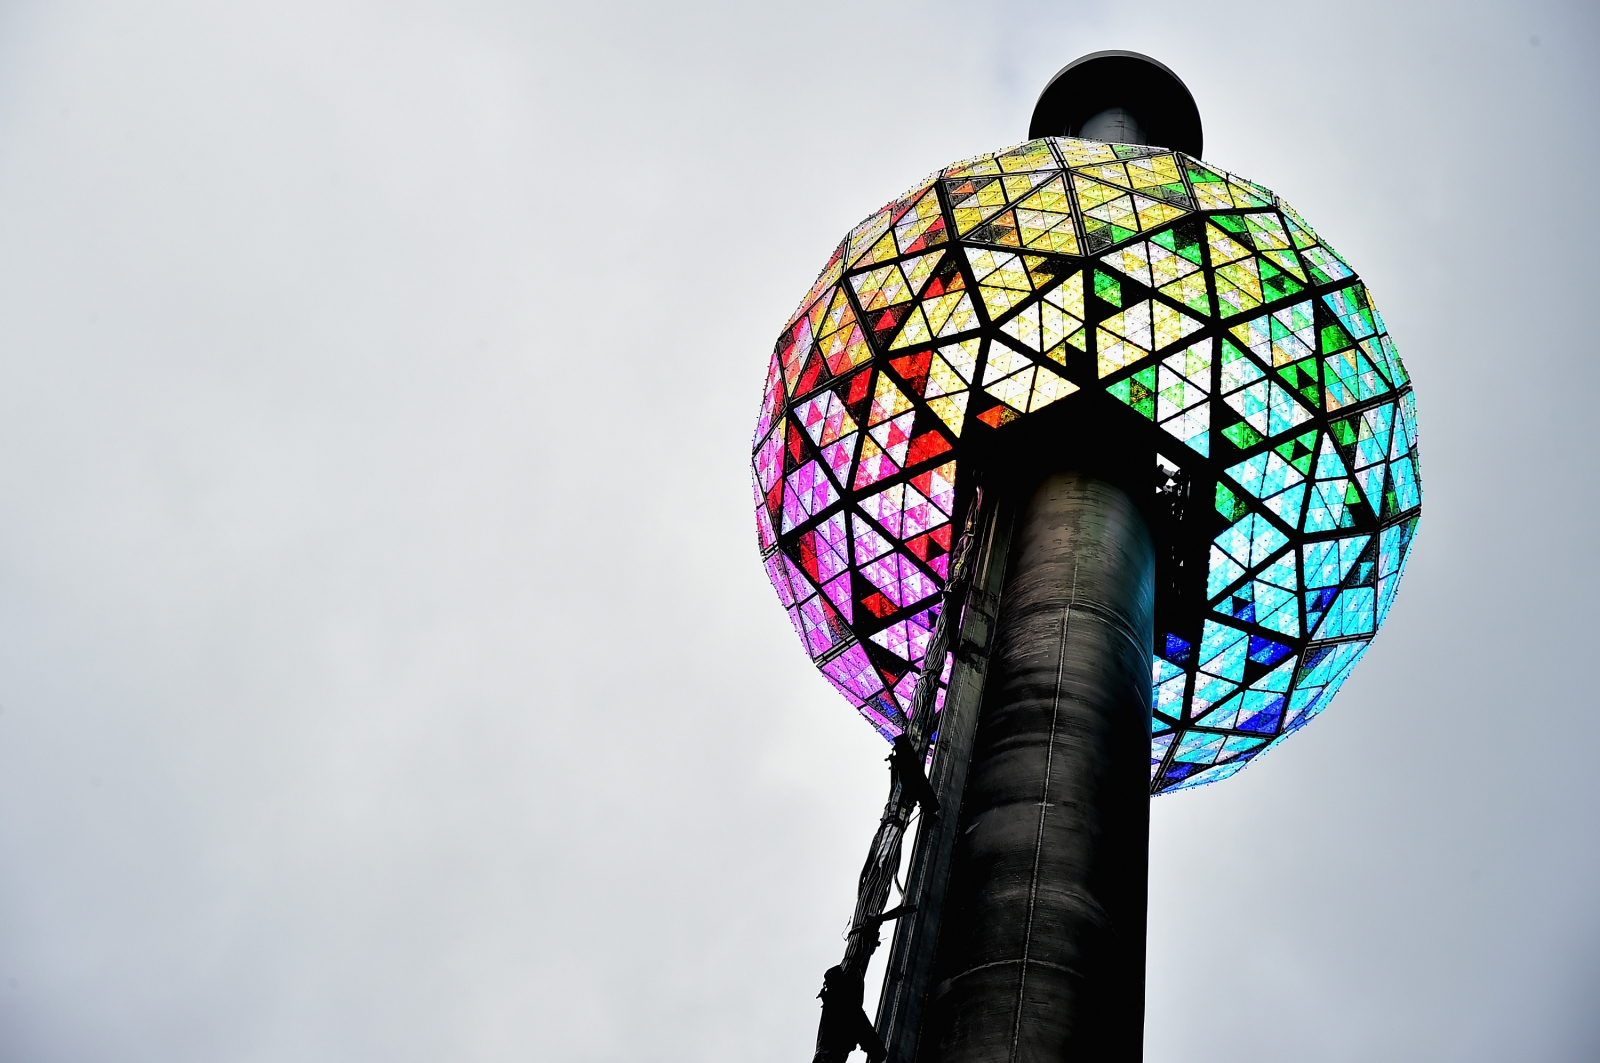 Times Square New Year's Eve Ball Drop: Everything You Need ...